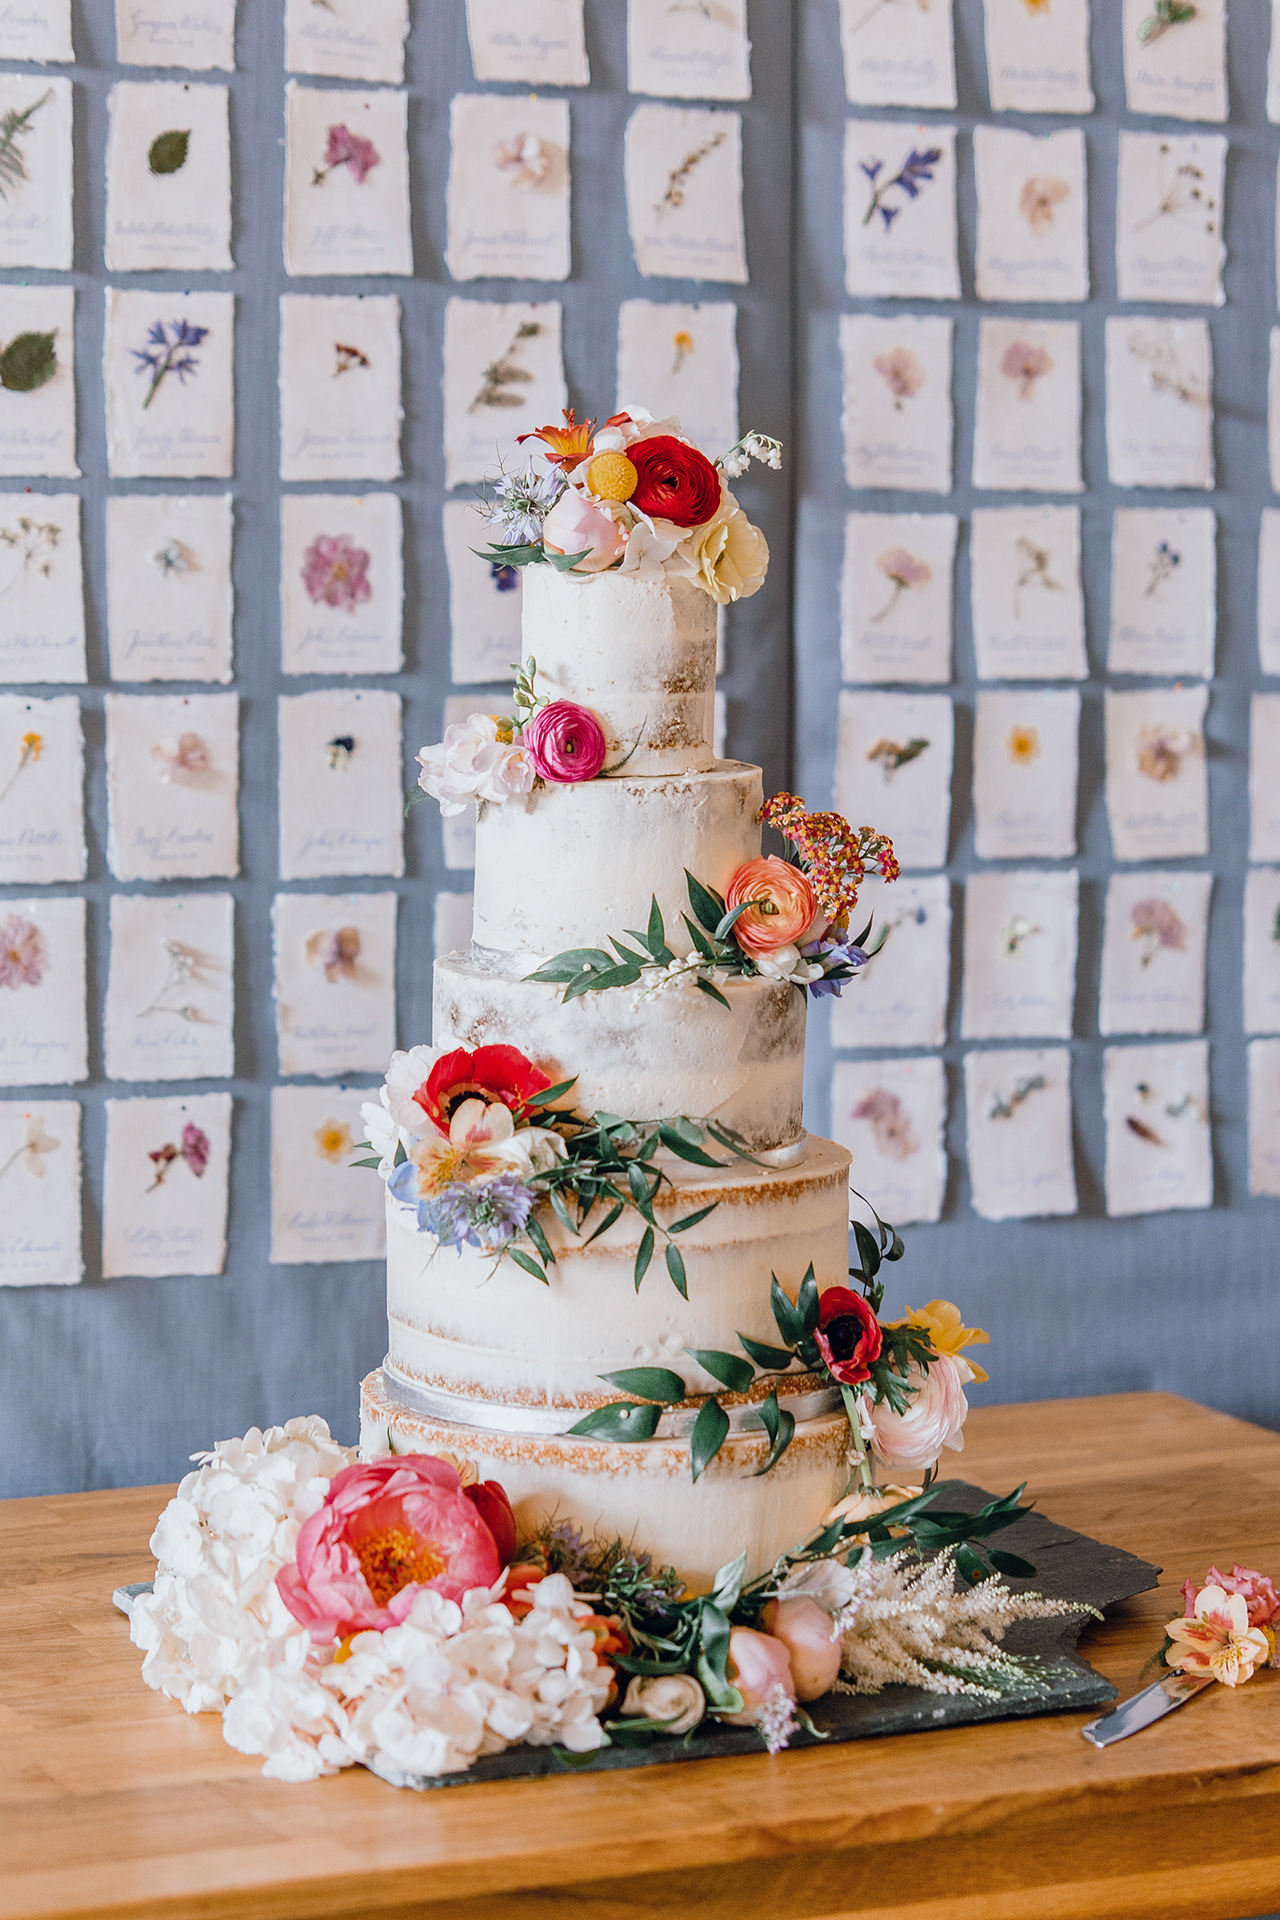 sem-naked five tier wedding cake with flowers